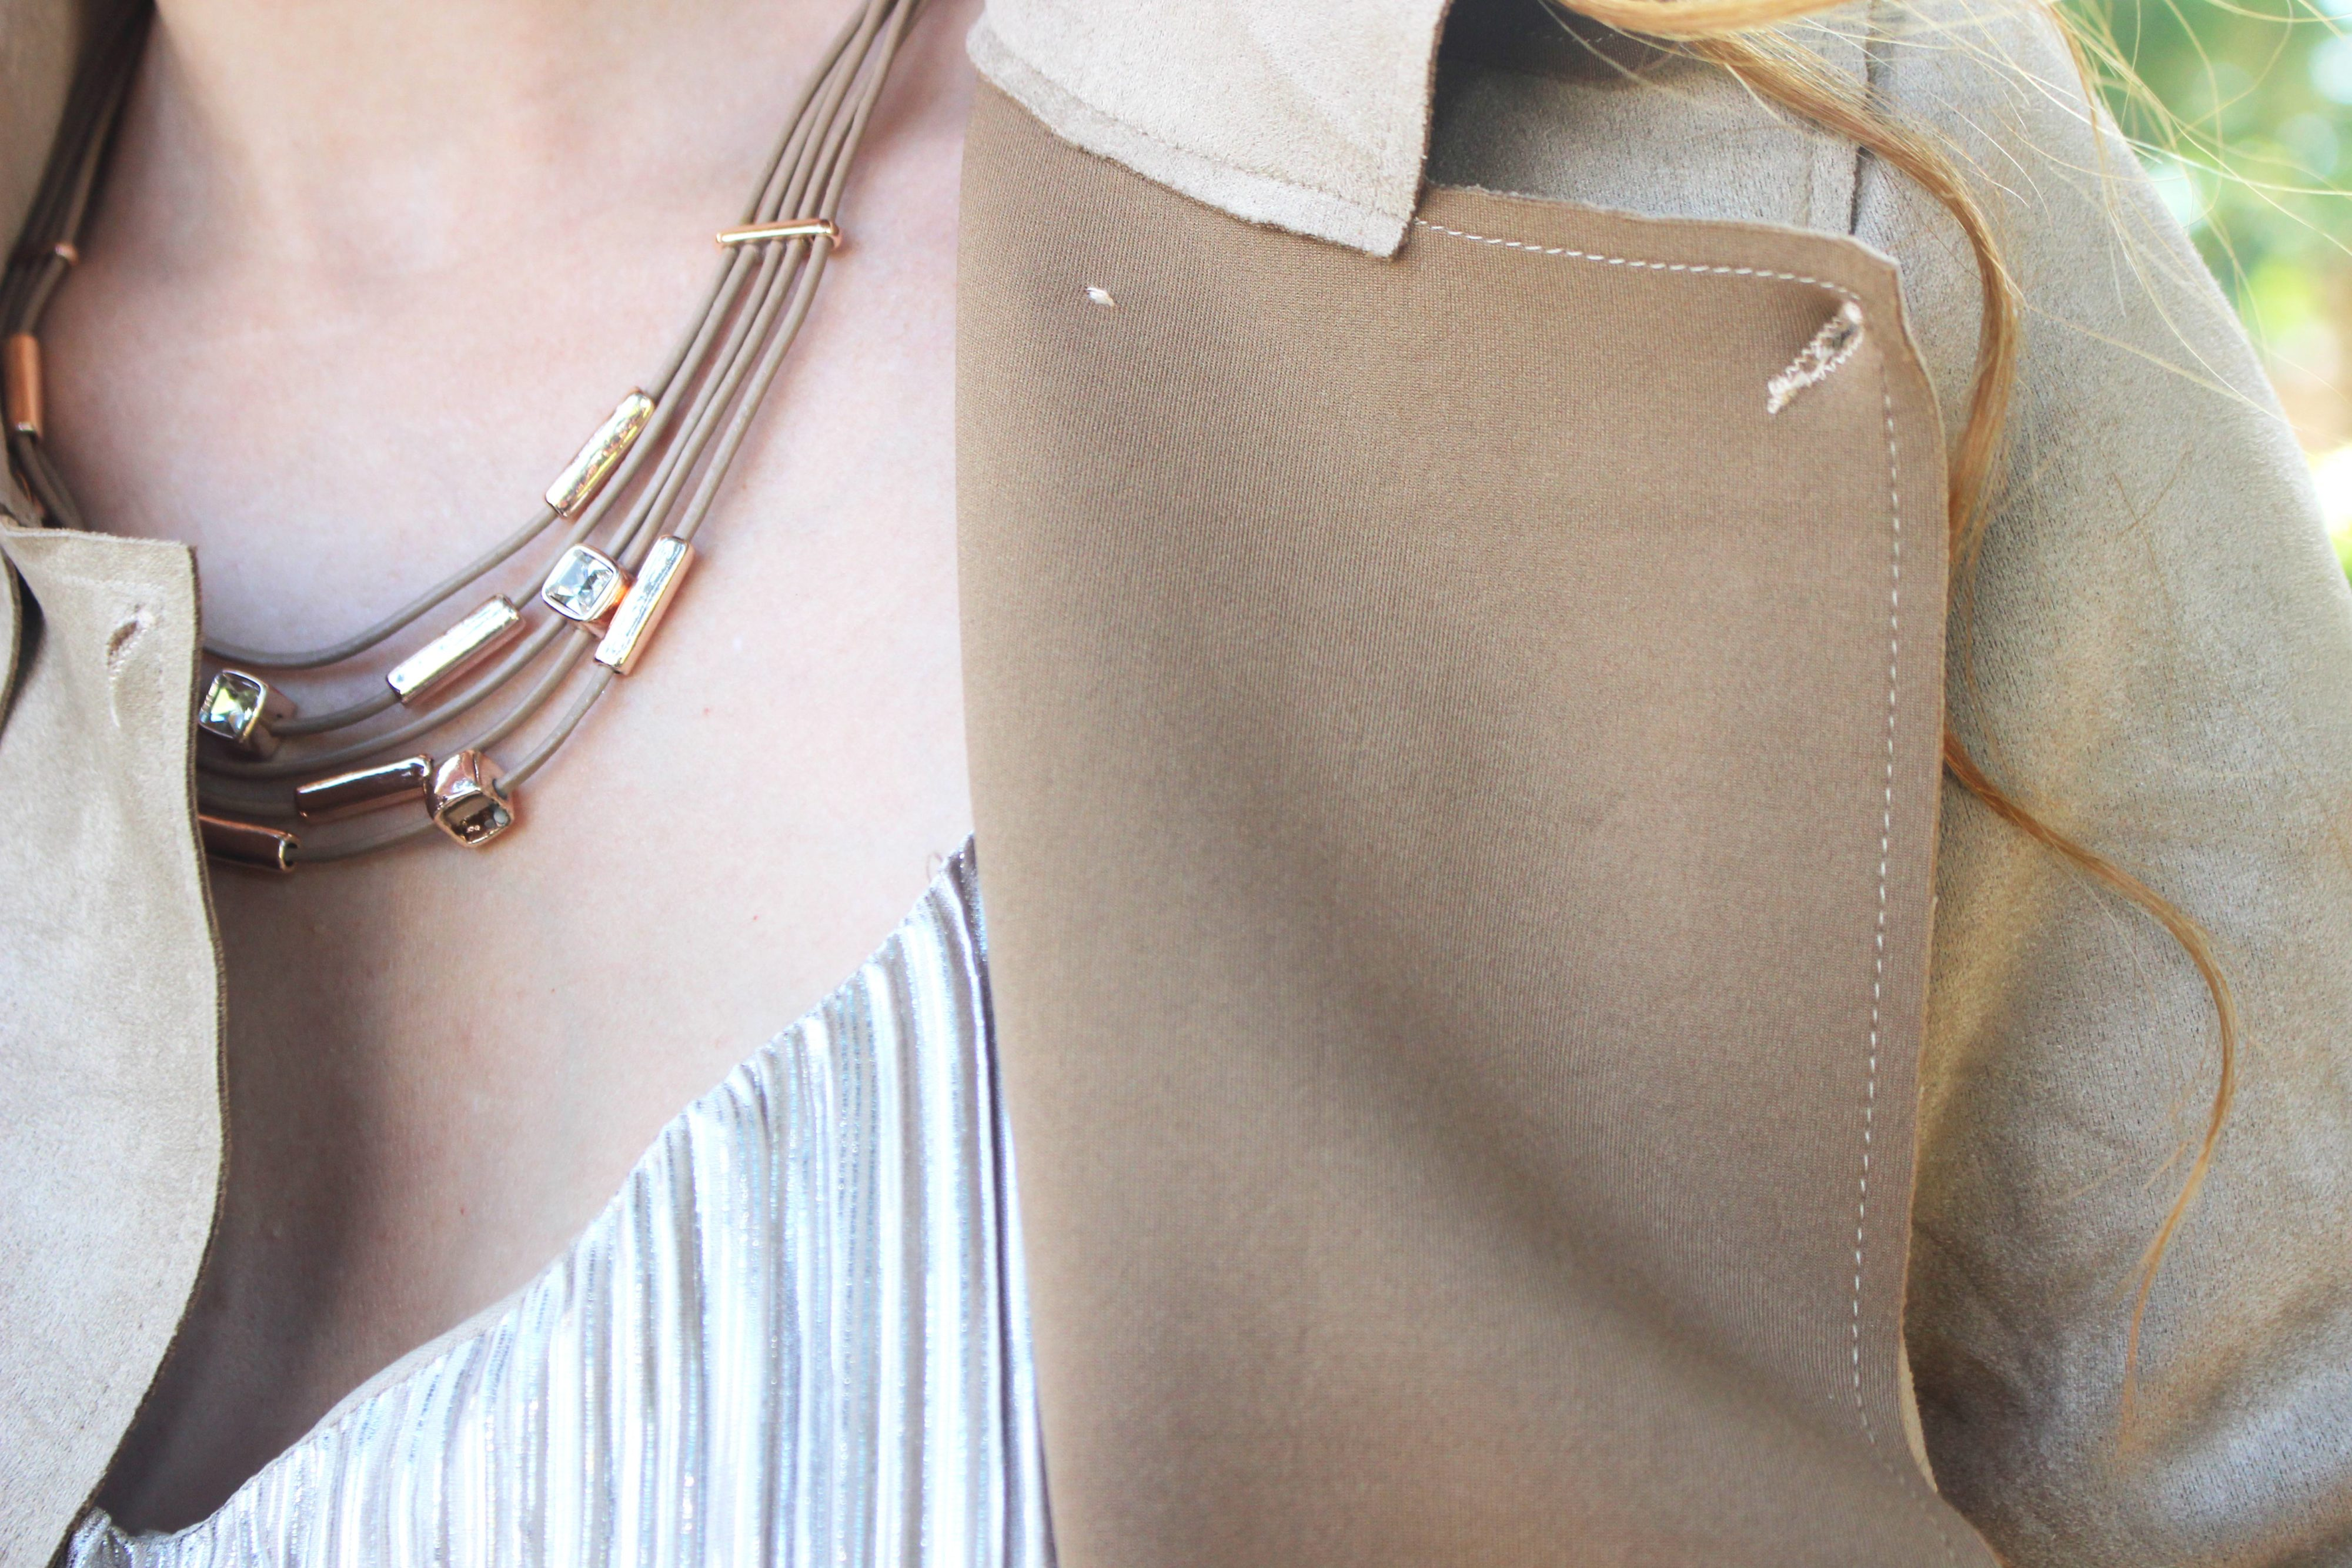 Detail photo of necklace and tan jacket